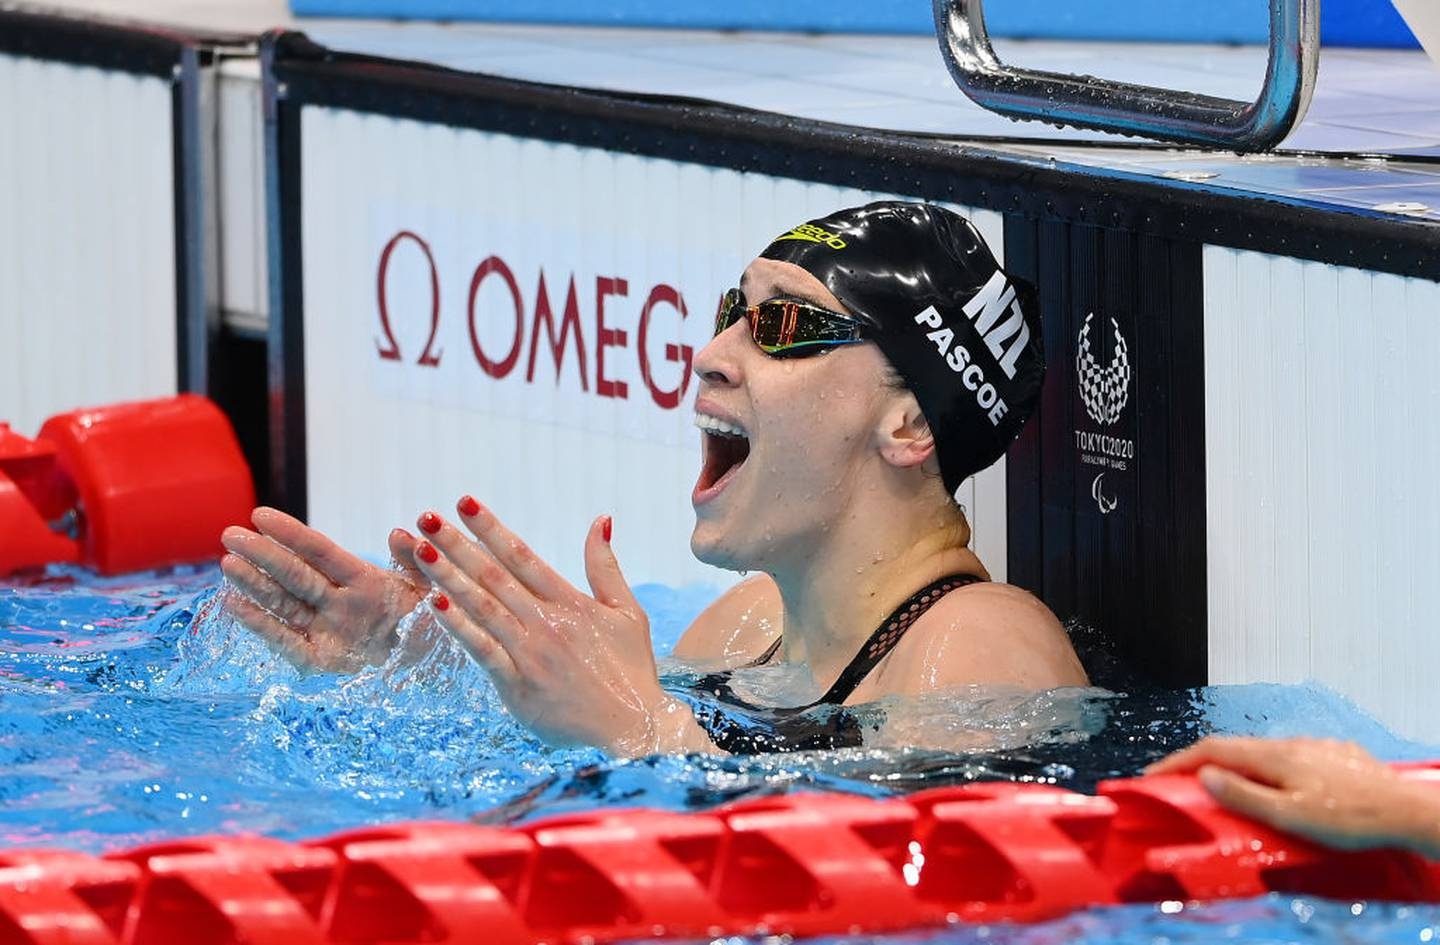 Sophie Pascoe reacts after winning gold in the S9 100m freestyle. Photo / Getty